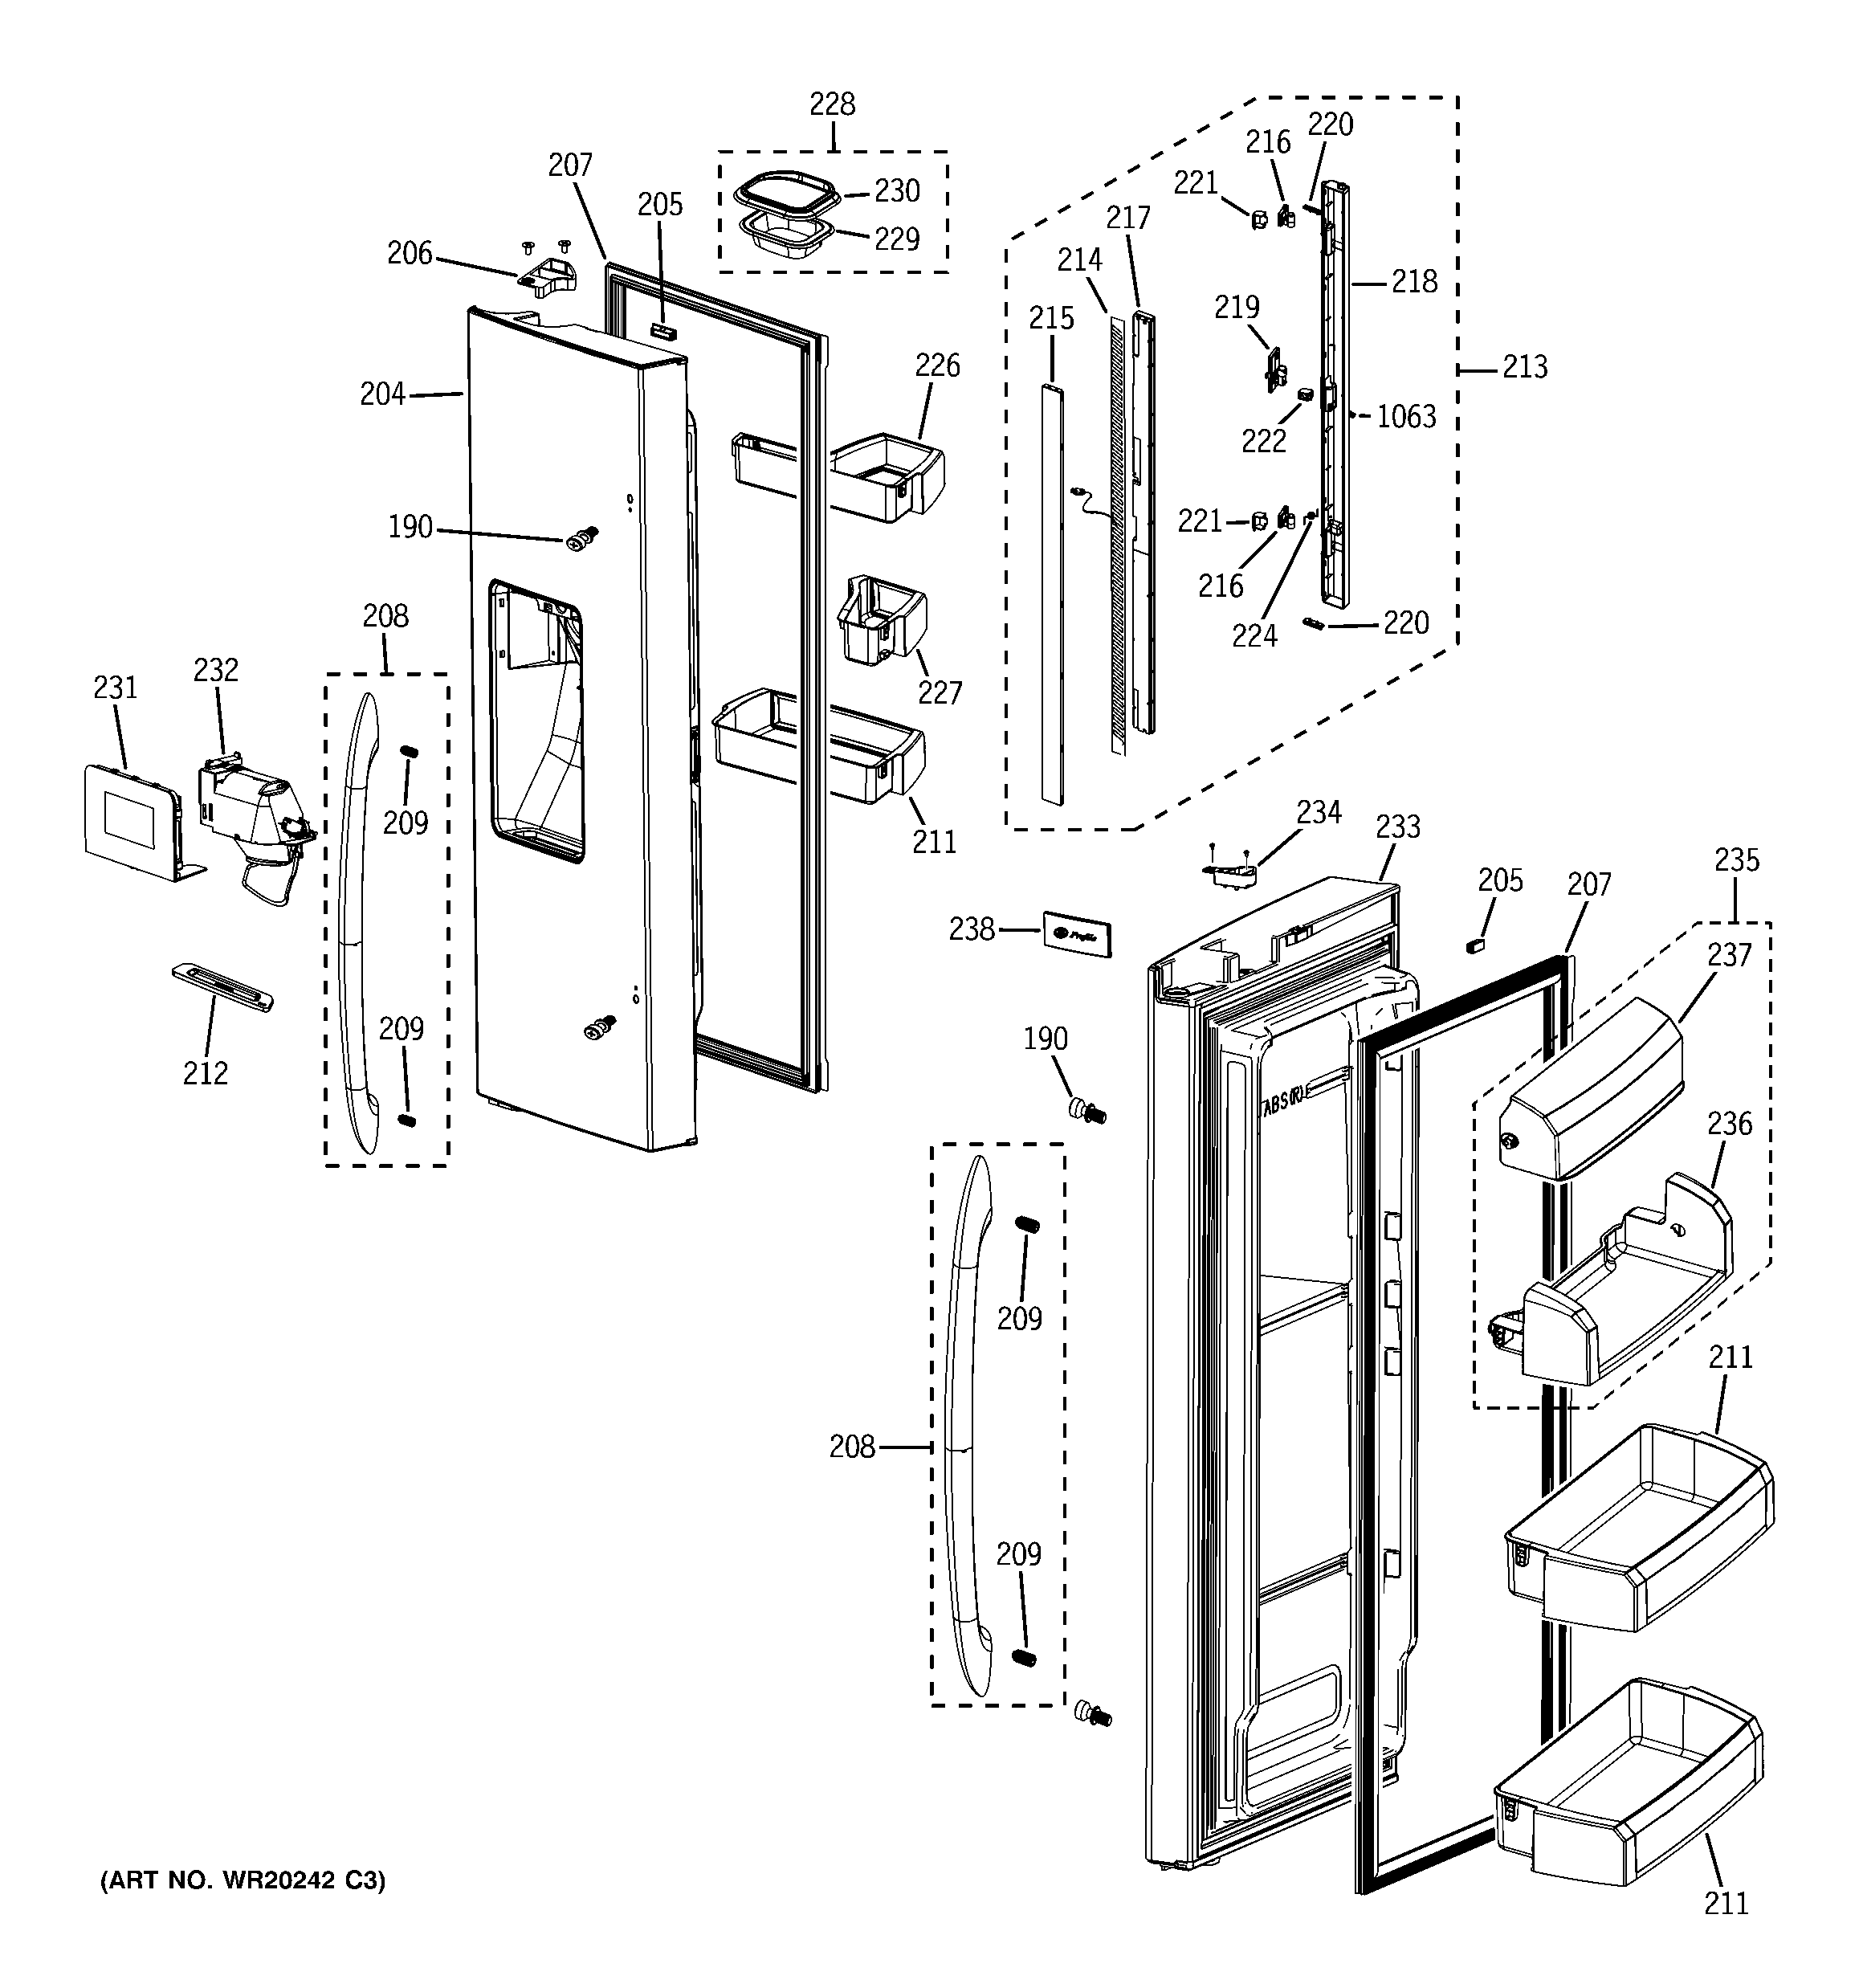 Ice Maker Diagram Parts List For Model Arse667bwparse667bw1 Amana